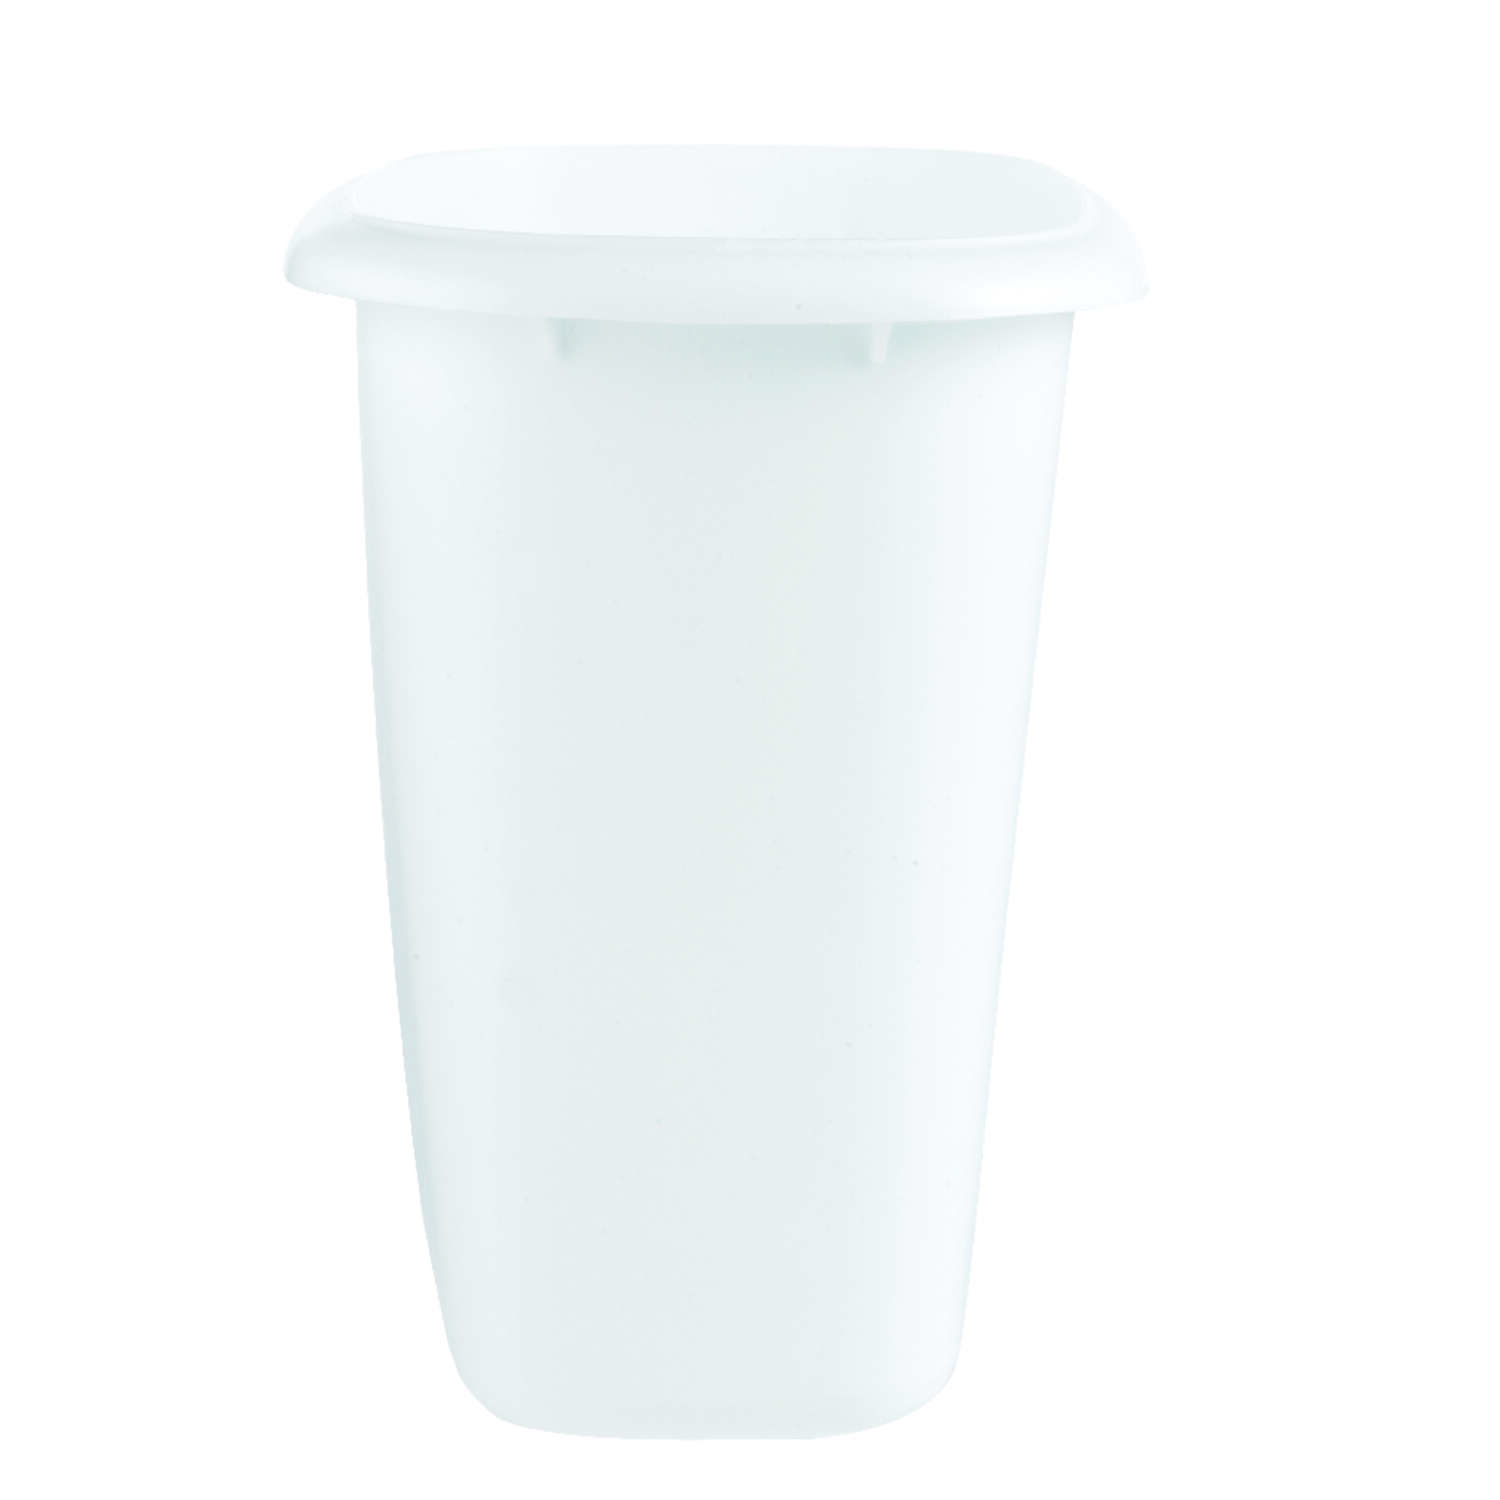 Rubbermaid 1.5 gal. White Plastic Vanity Wastebasket